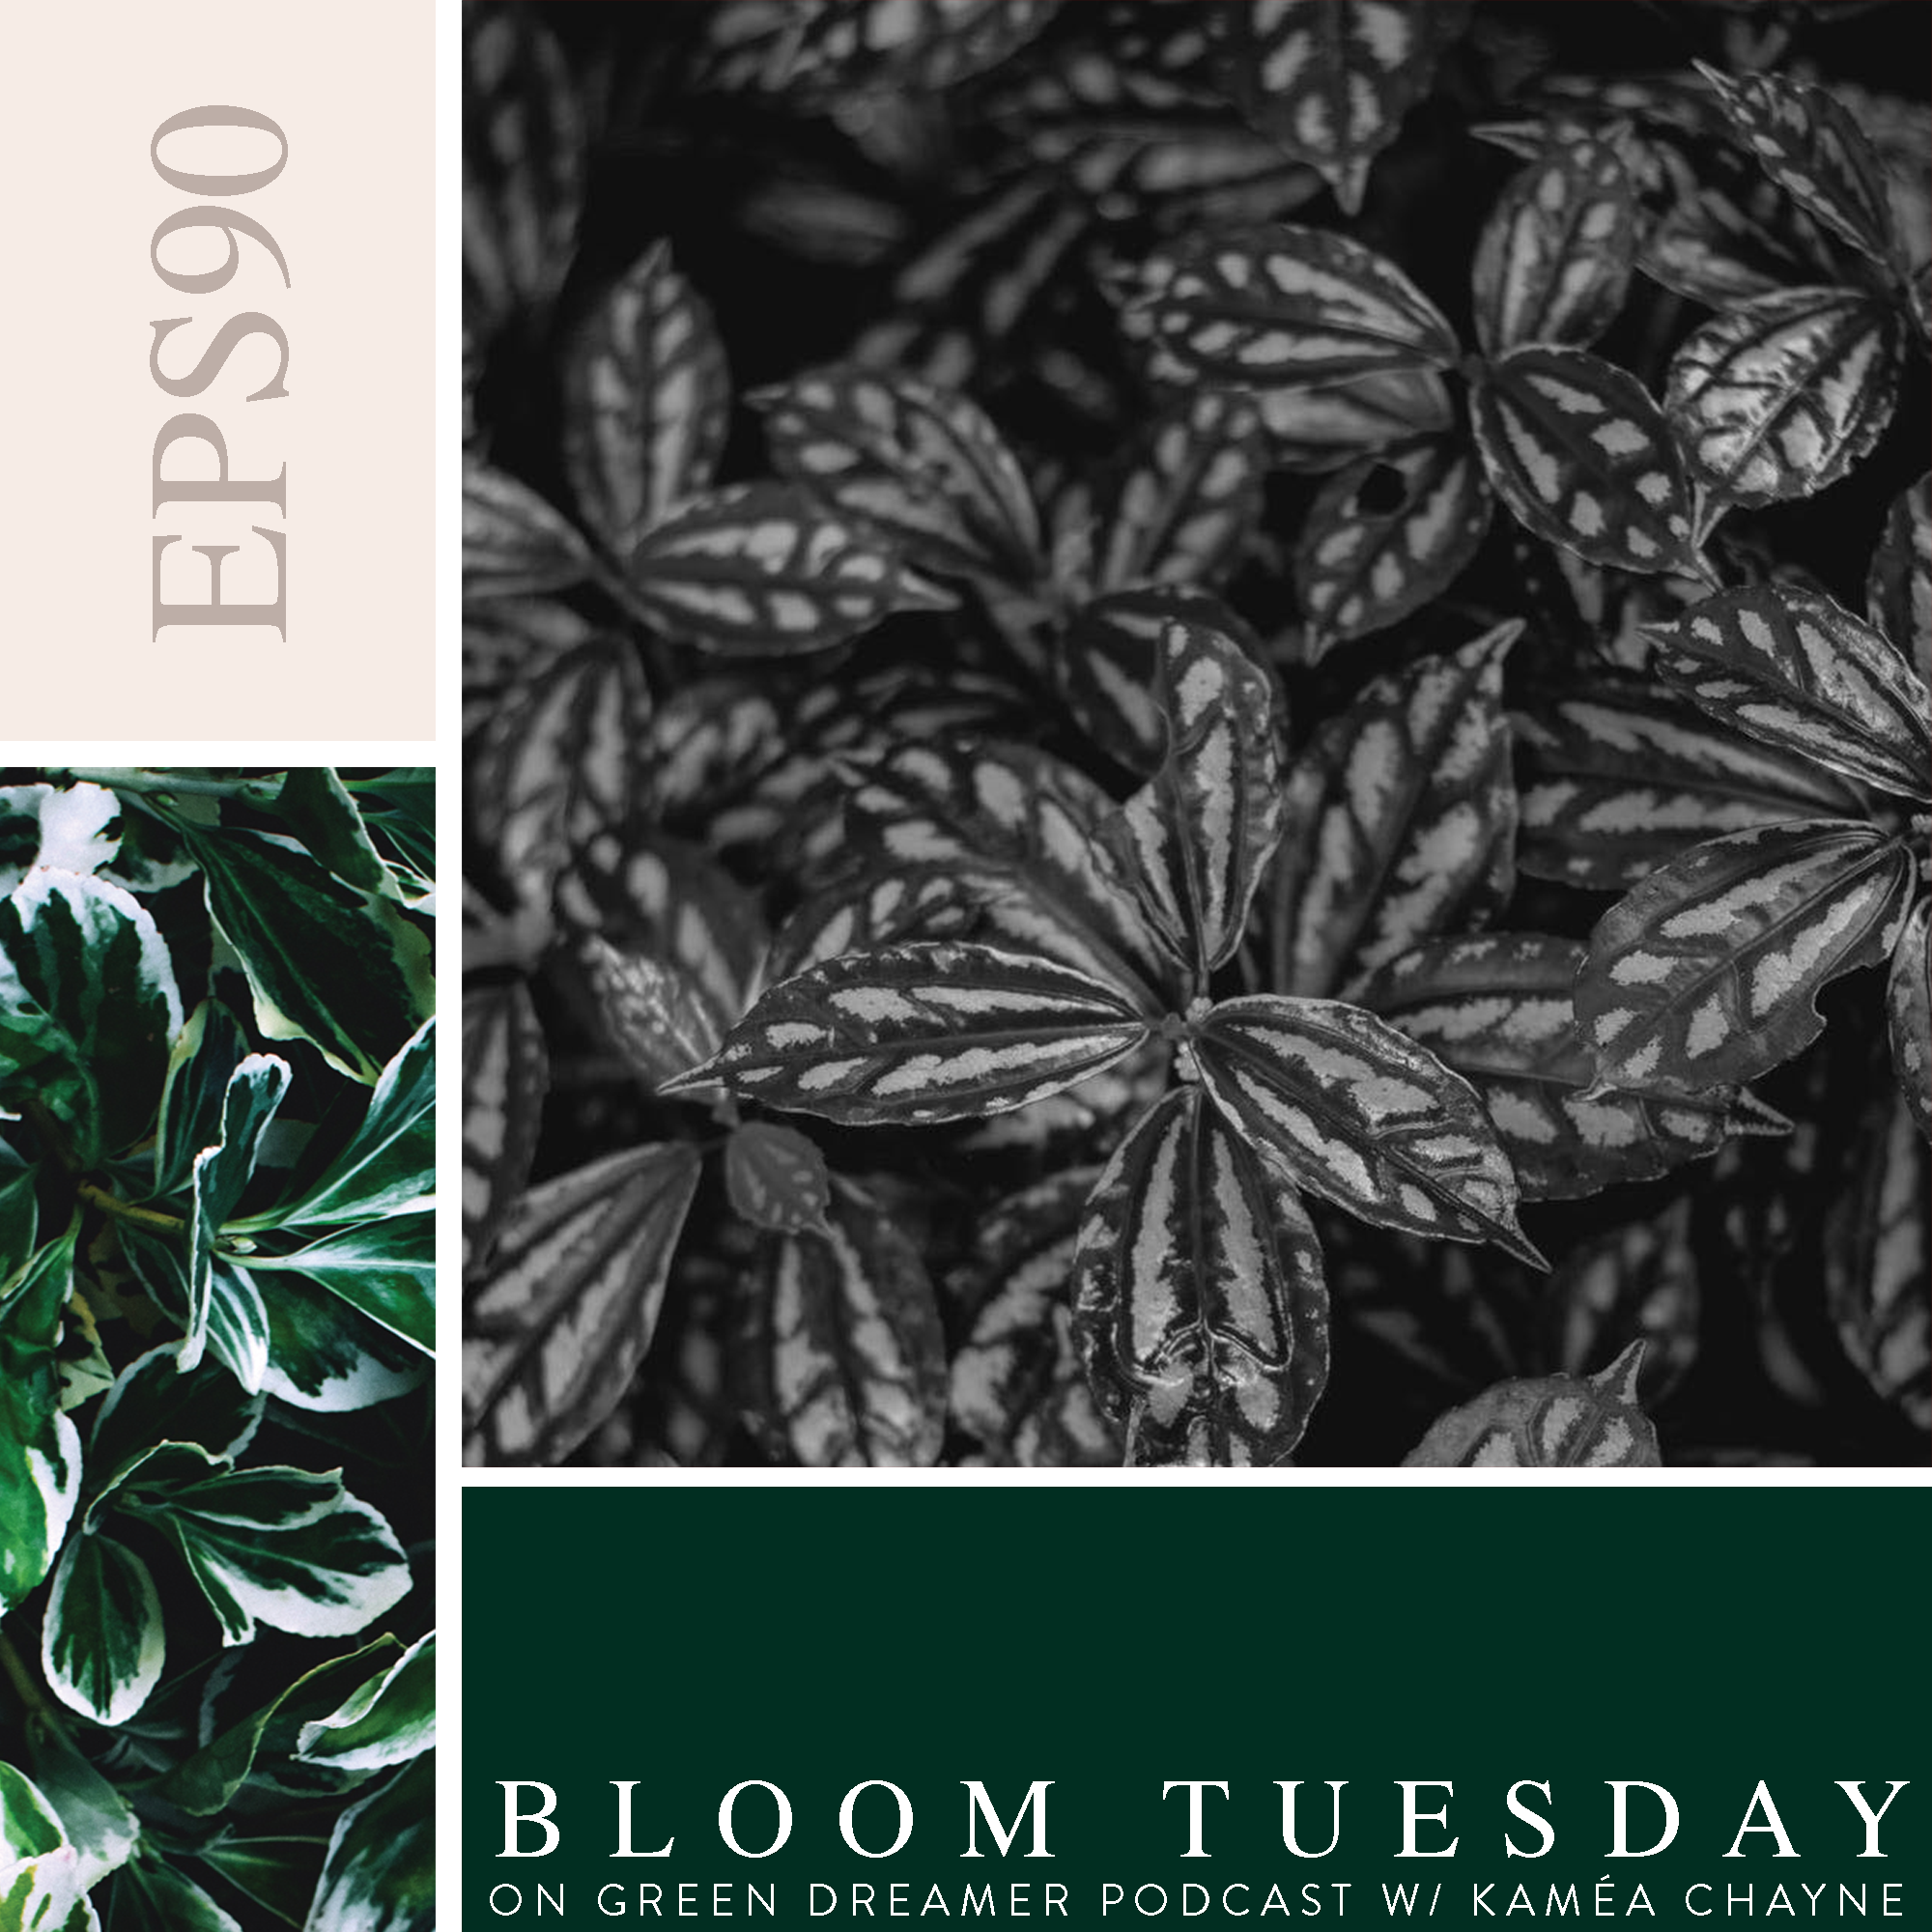 90) BLOOM TUESDAY